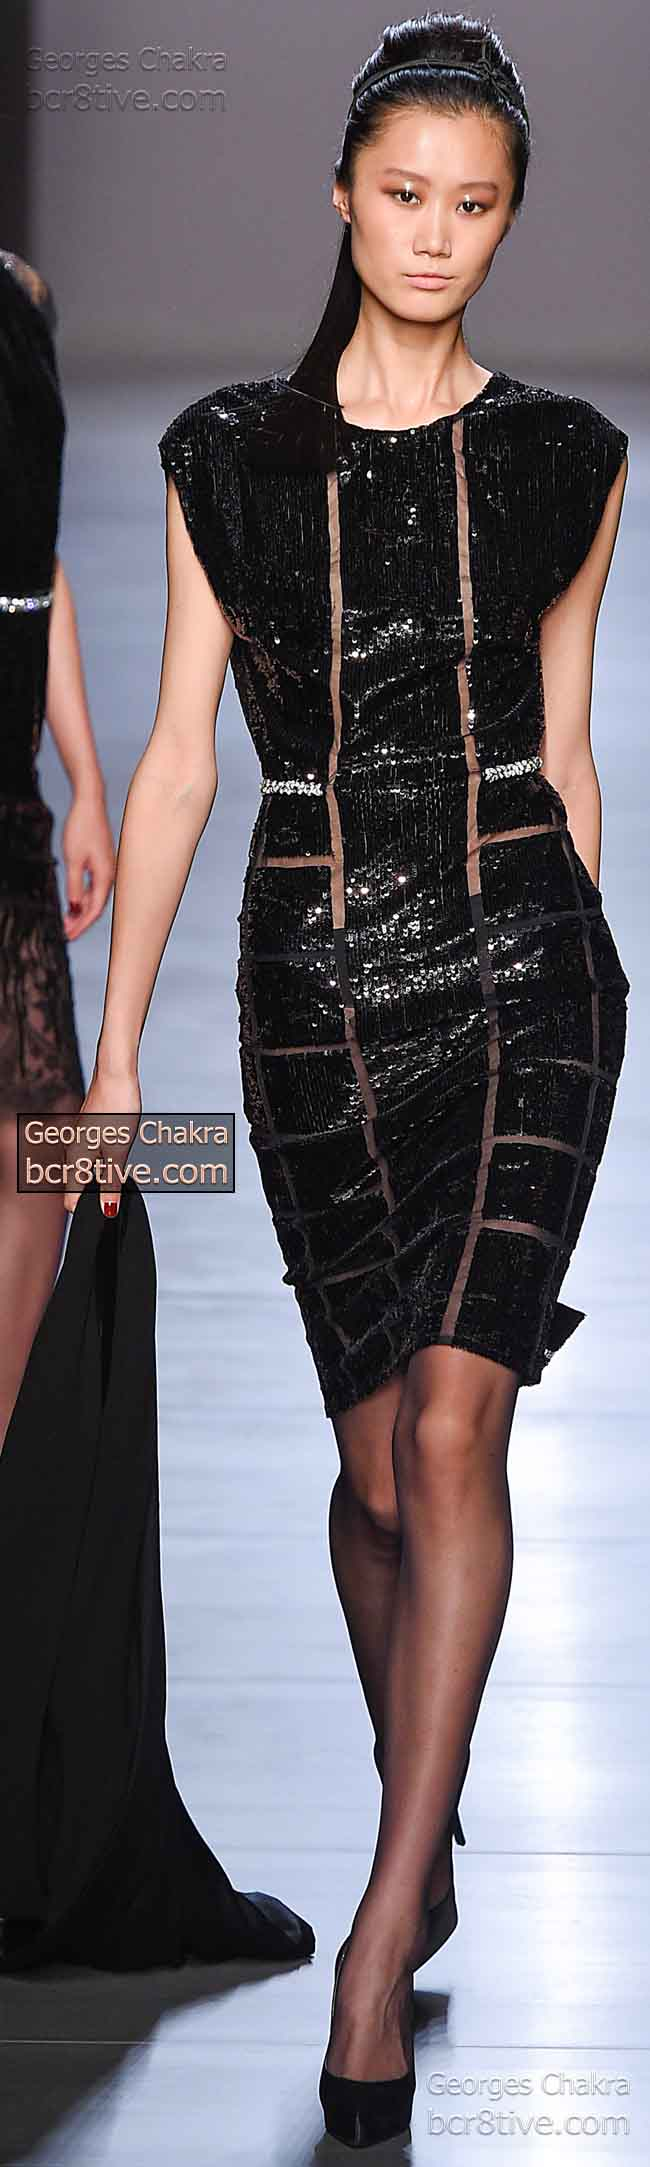 Striking Black Sequin Dress